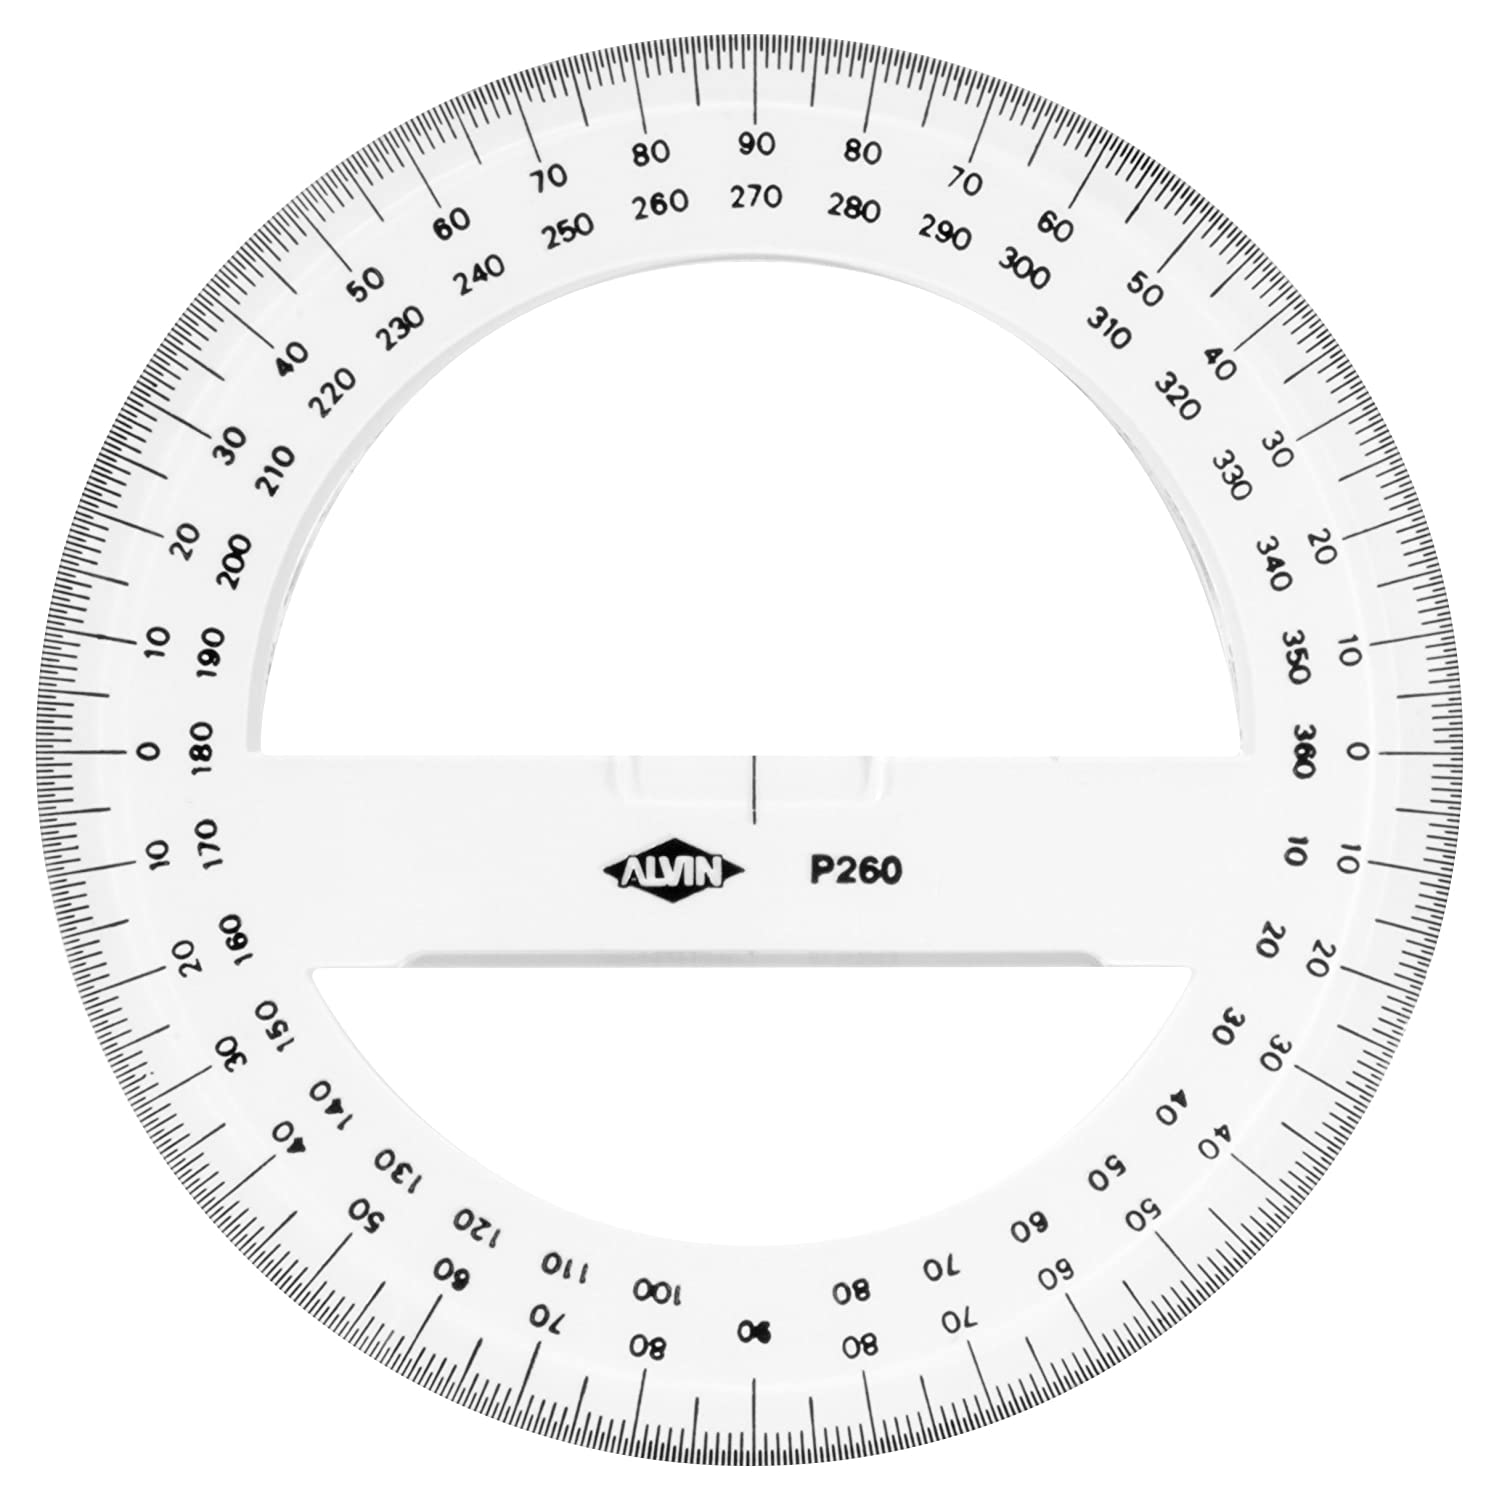 worksheet Protractor Print Out amazon com alvin p260 6 inch circular protractor construction protractors office products